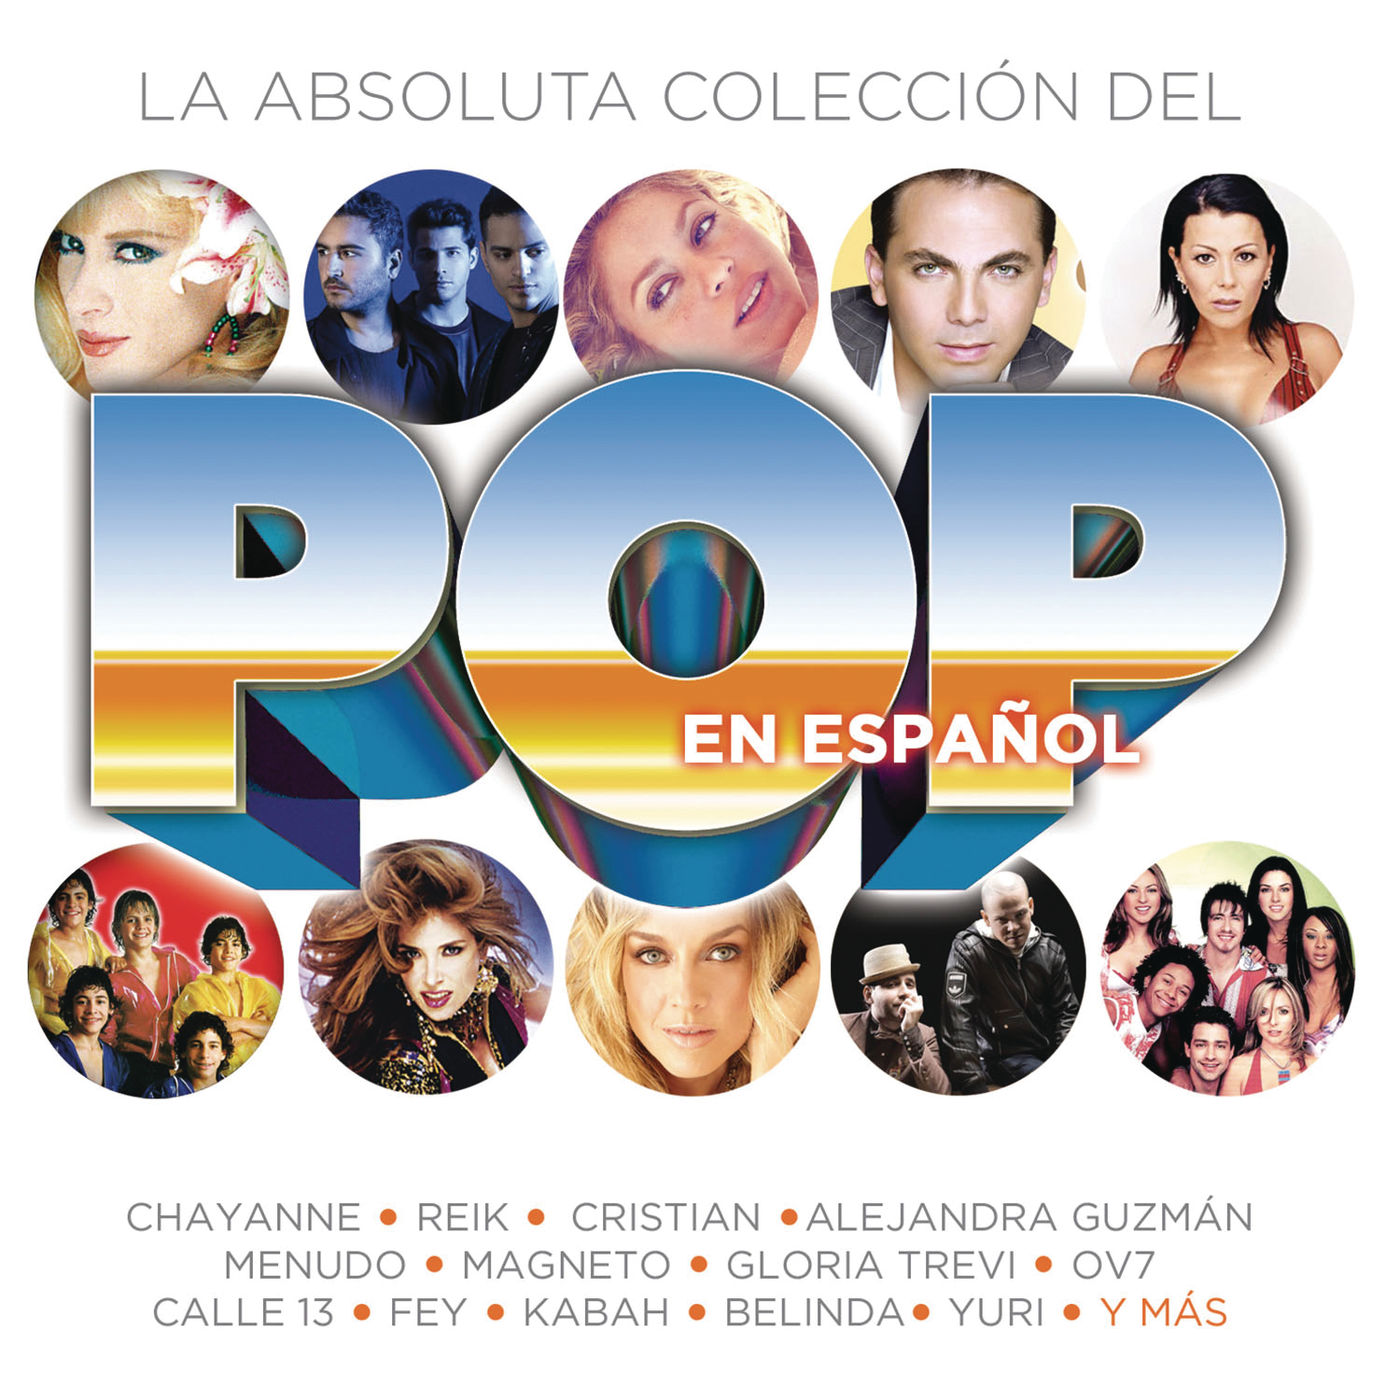 La Absoluta Coleccion del Pop en Espanol